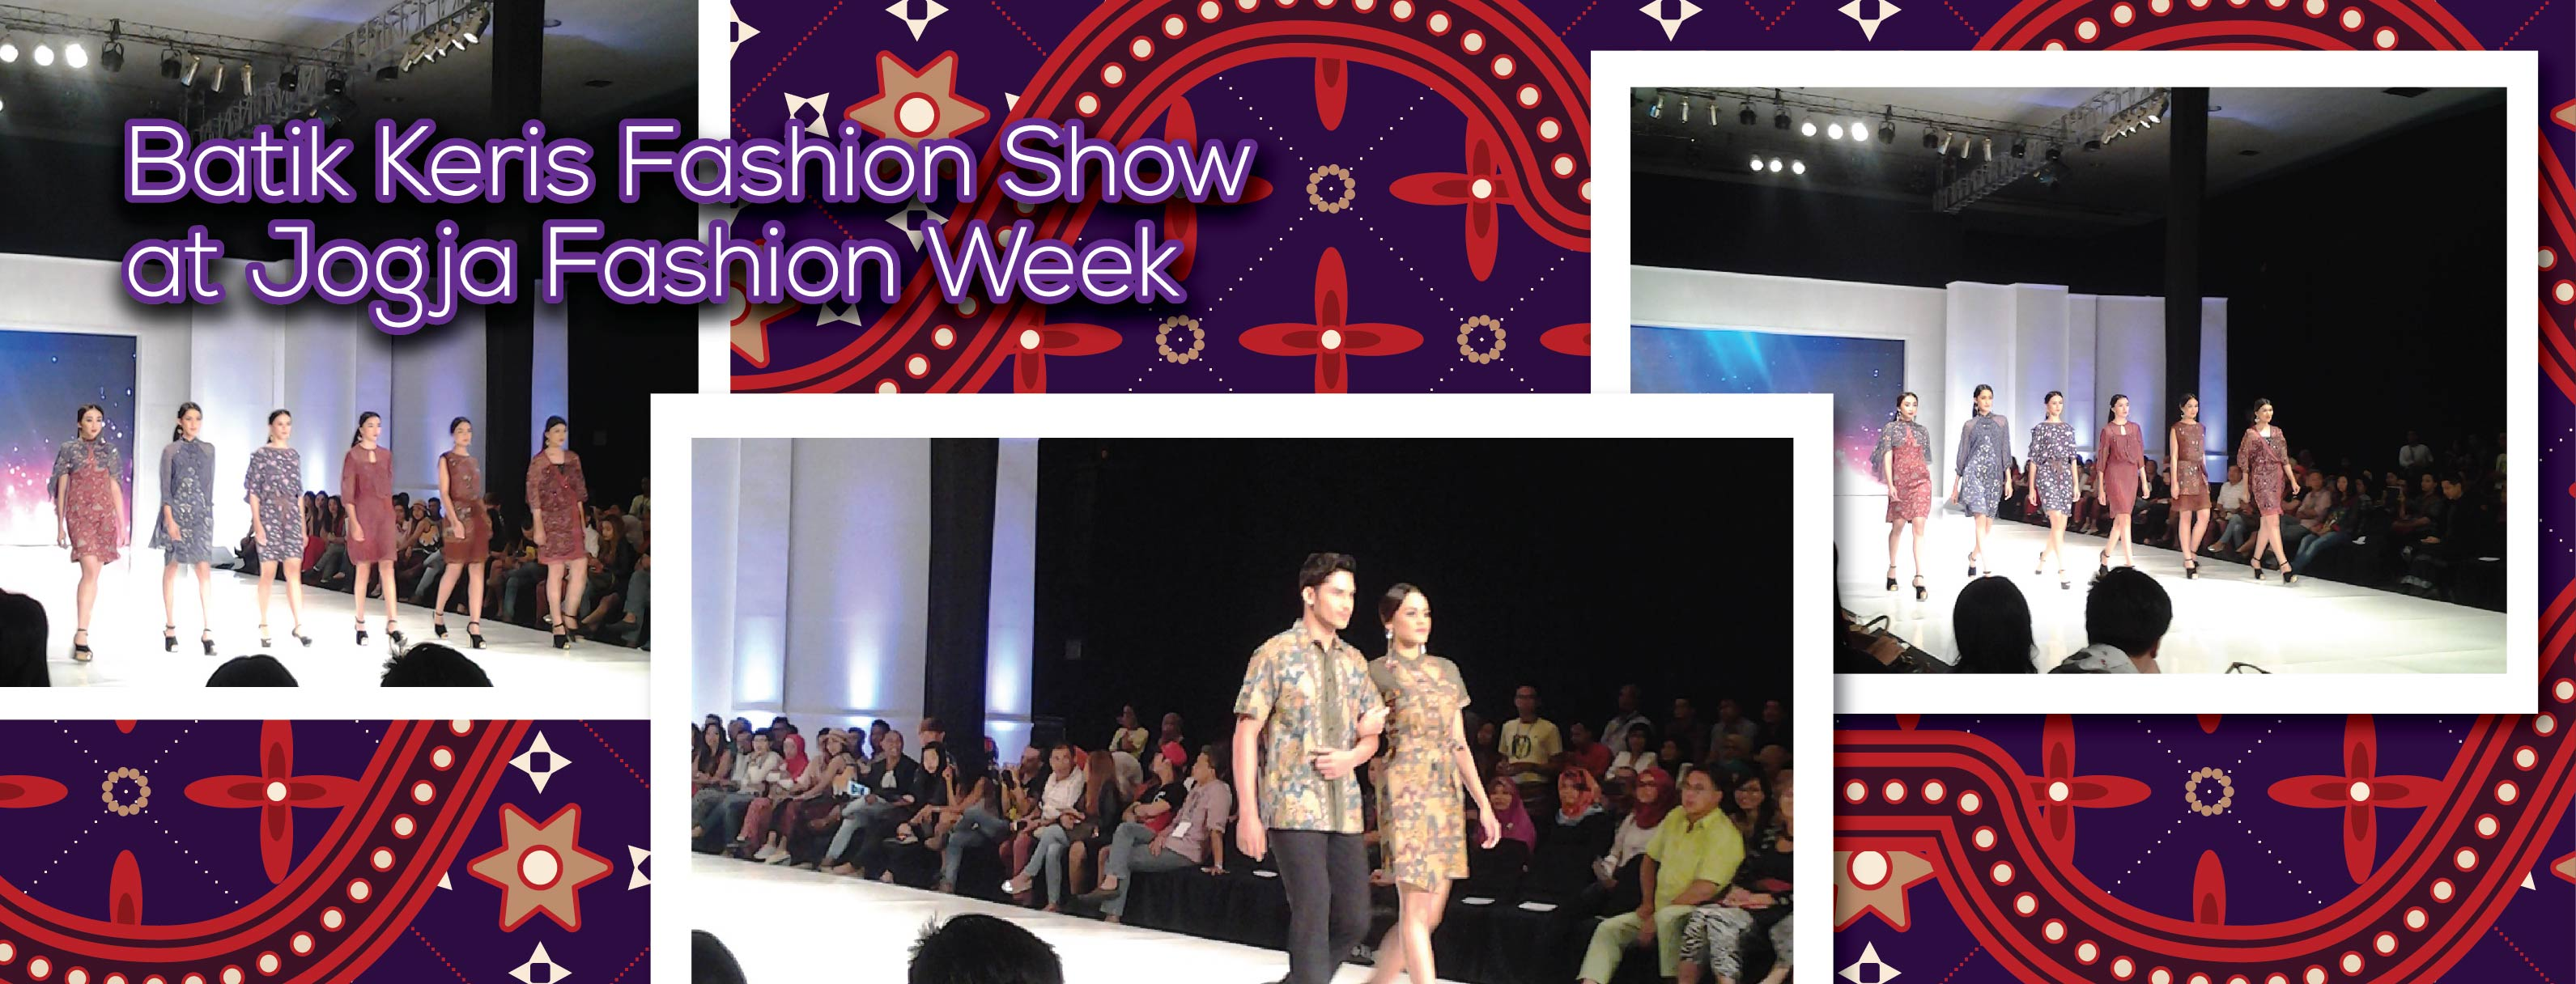 Batik Keris Fashion Show at Jogja Fashion Week